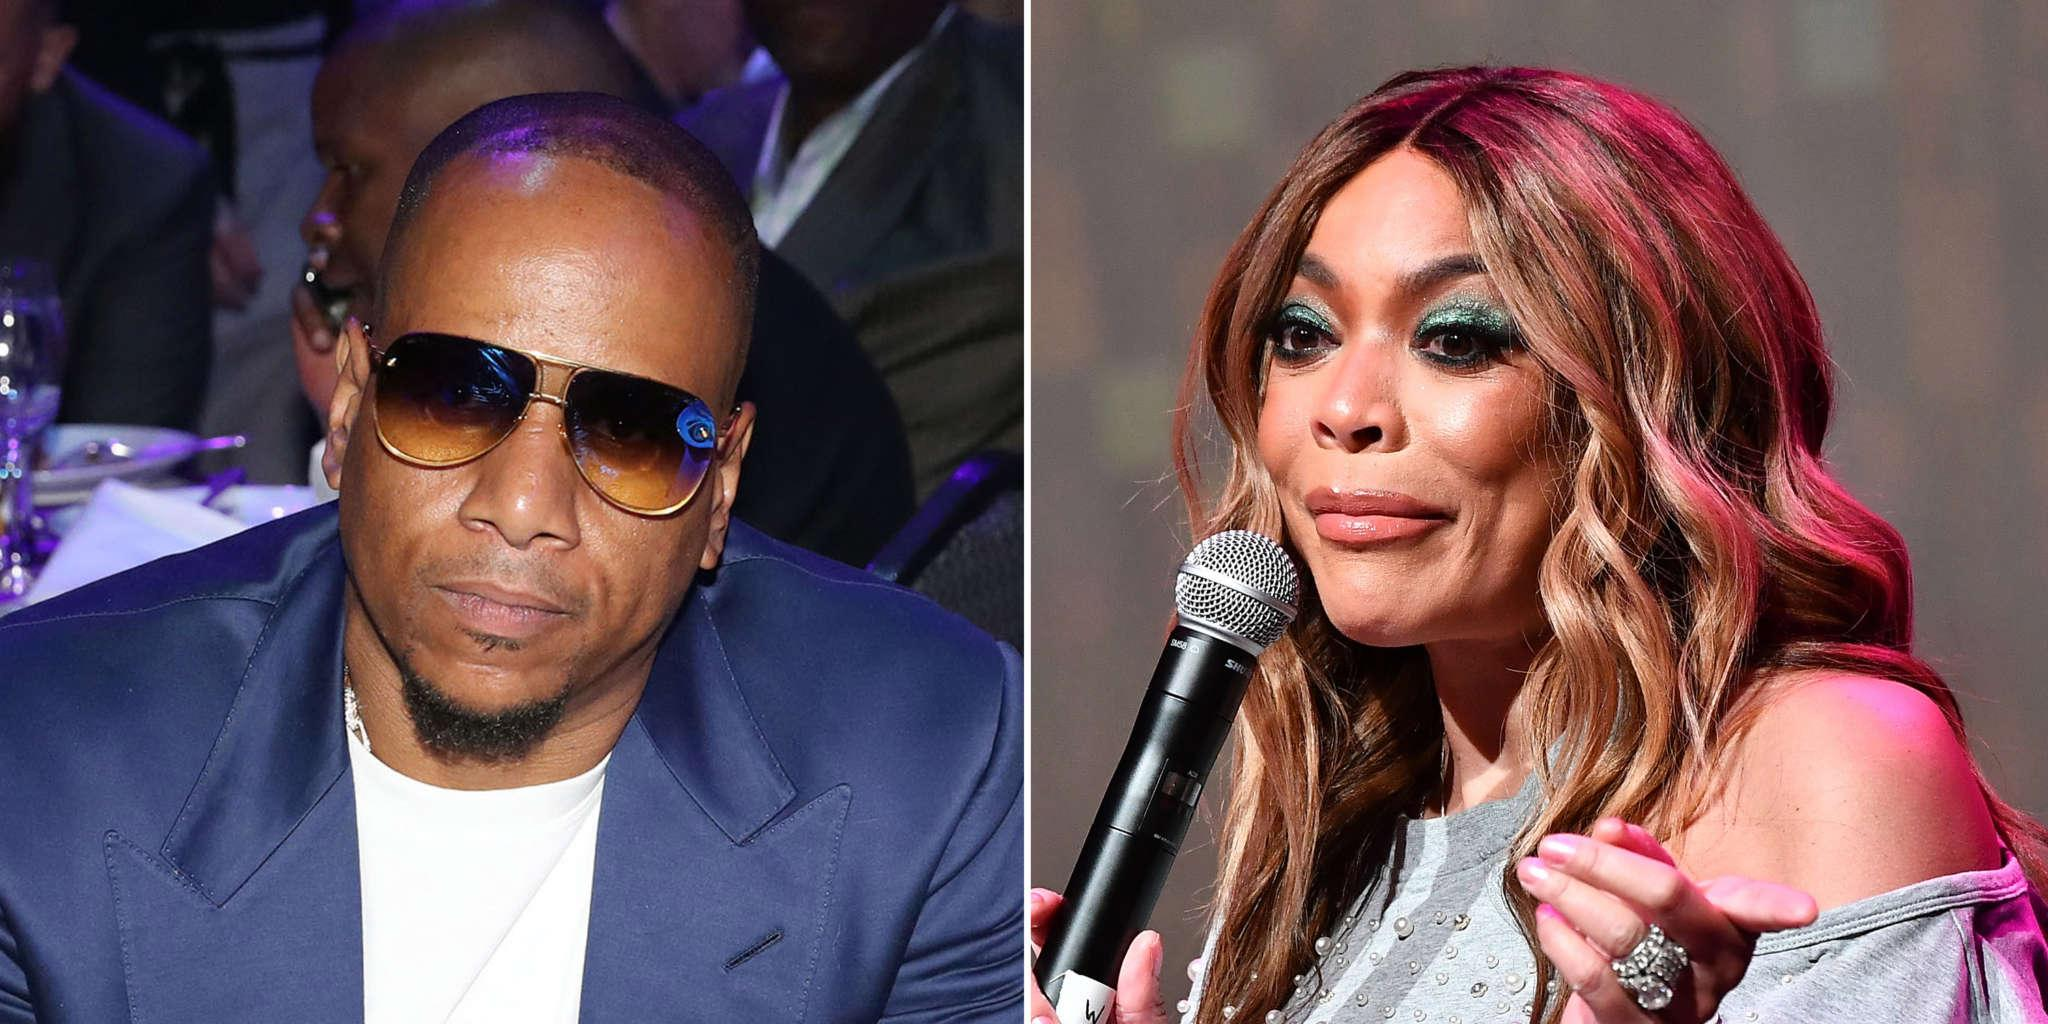 Wendy Williams Disses Kevin Hunter's Mistress For Having A Baby With Him - Says She's 'Miserable' Taking Care Of An Infant!